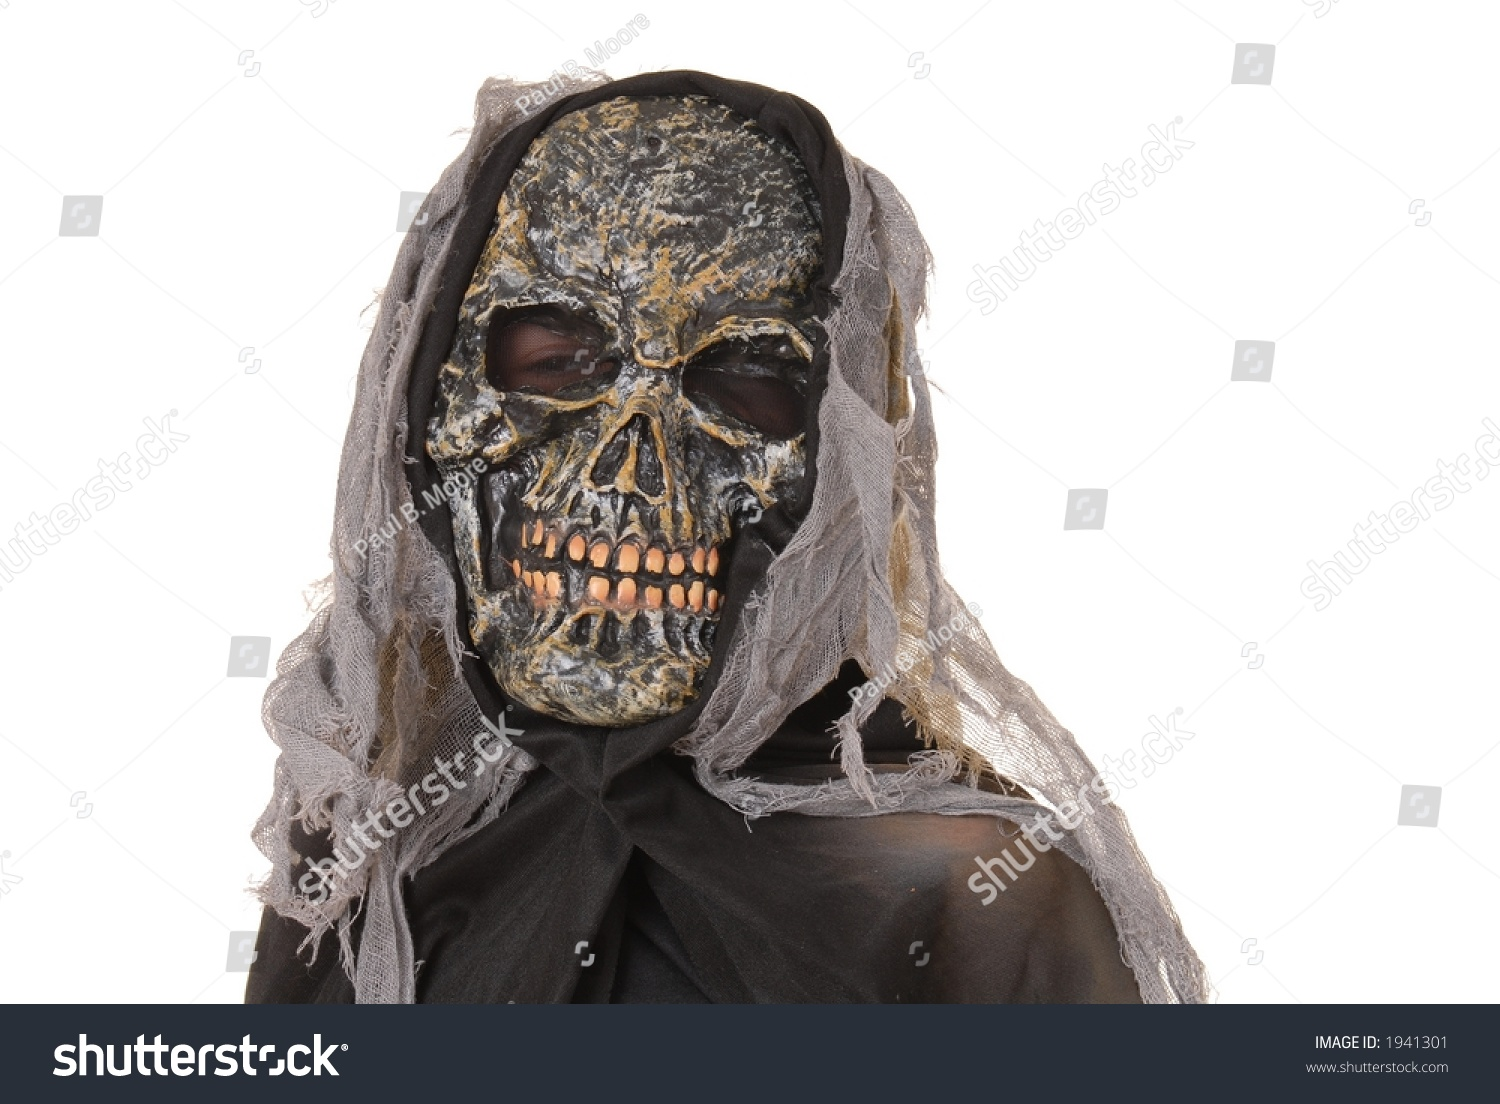 Young Boy Ghoul Halloween Costume Stock Photo 1941301 - Shutterstock